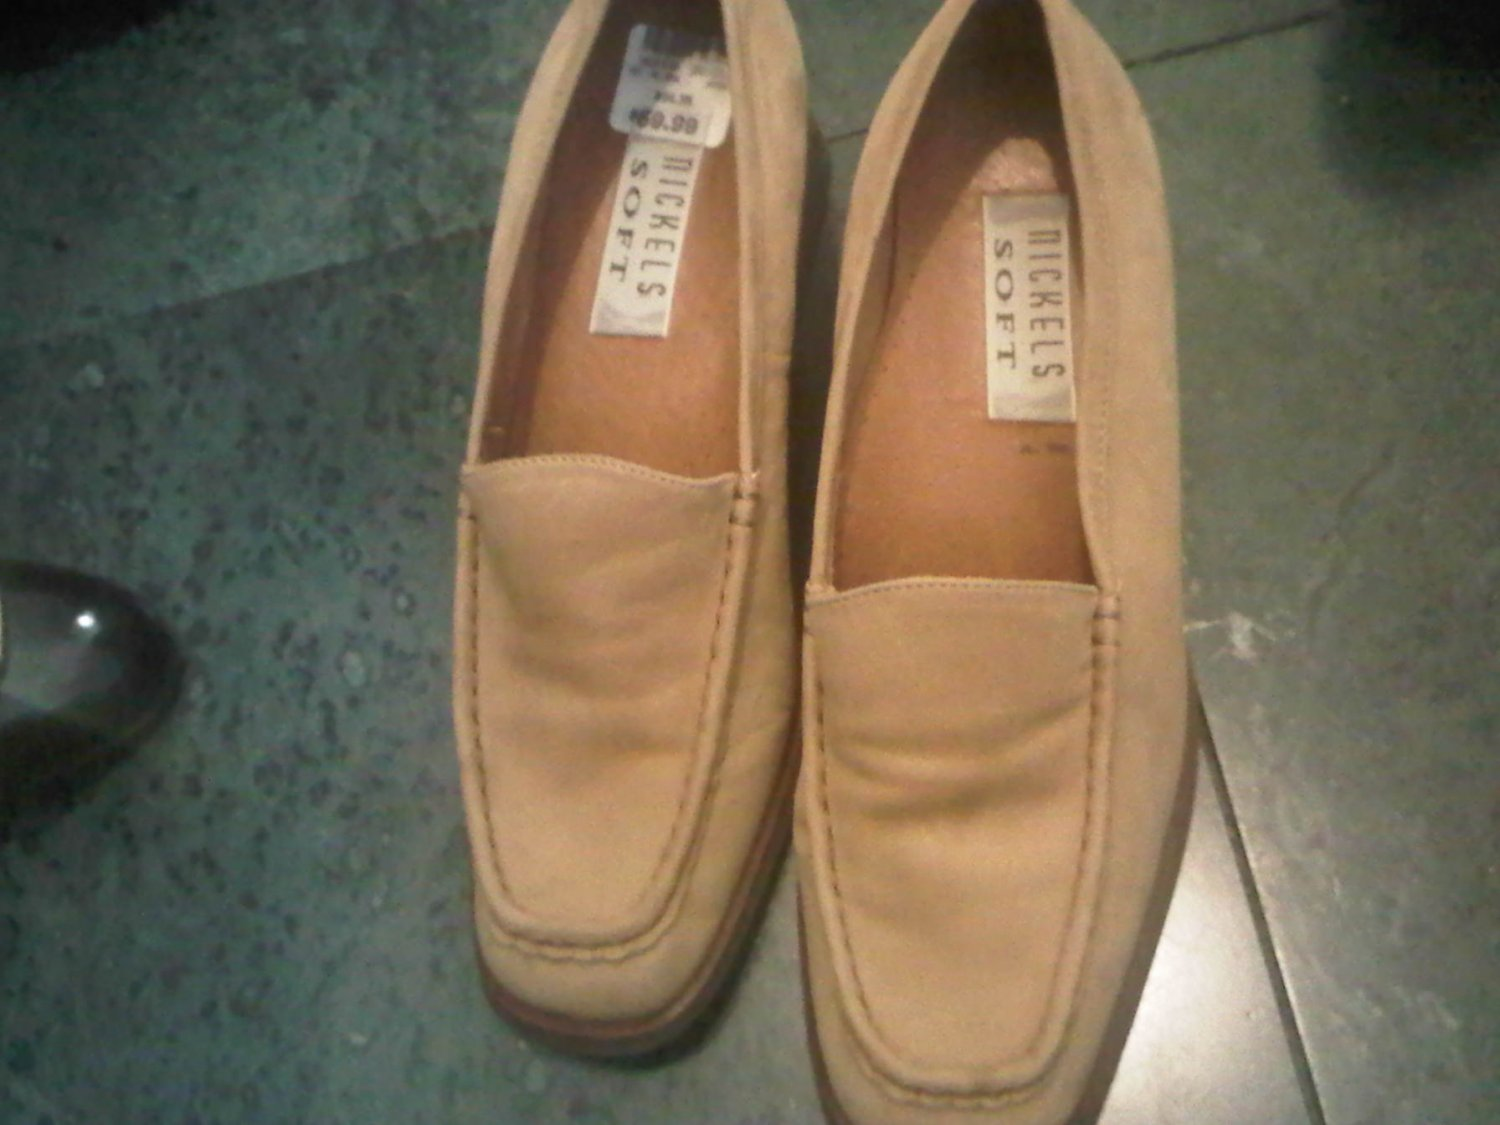 NICKELS SOFT SUEDE 8.5 TAN OFFICE DRESS SHOES WOMEN'S LEATHER CLOTHES ACCESSORY